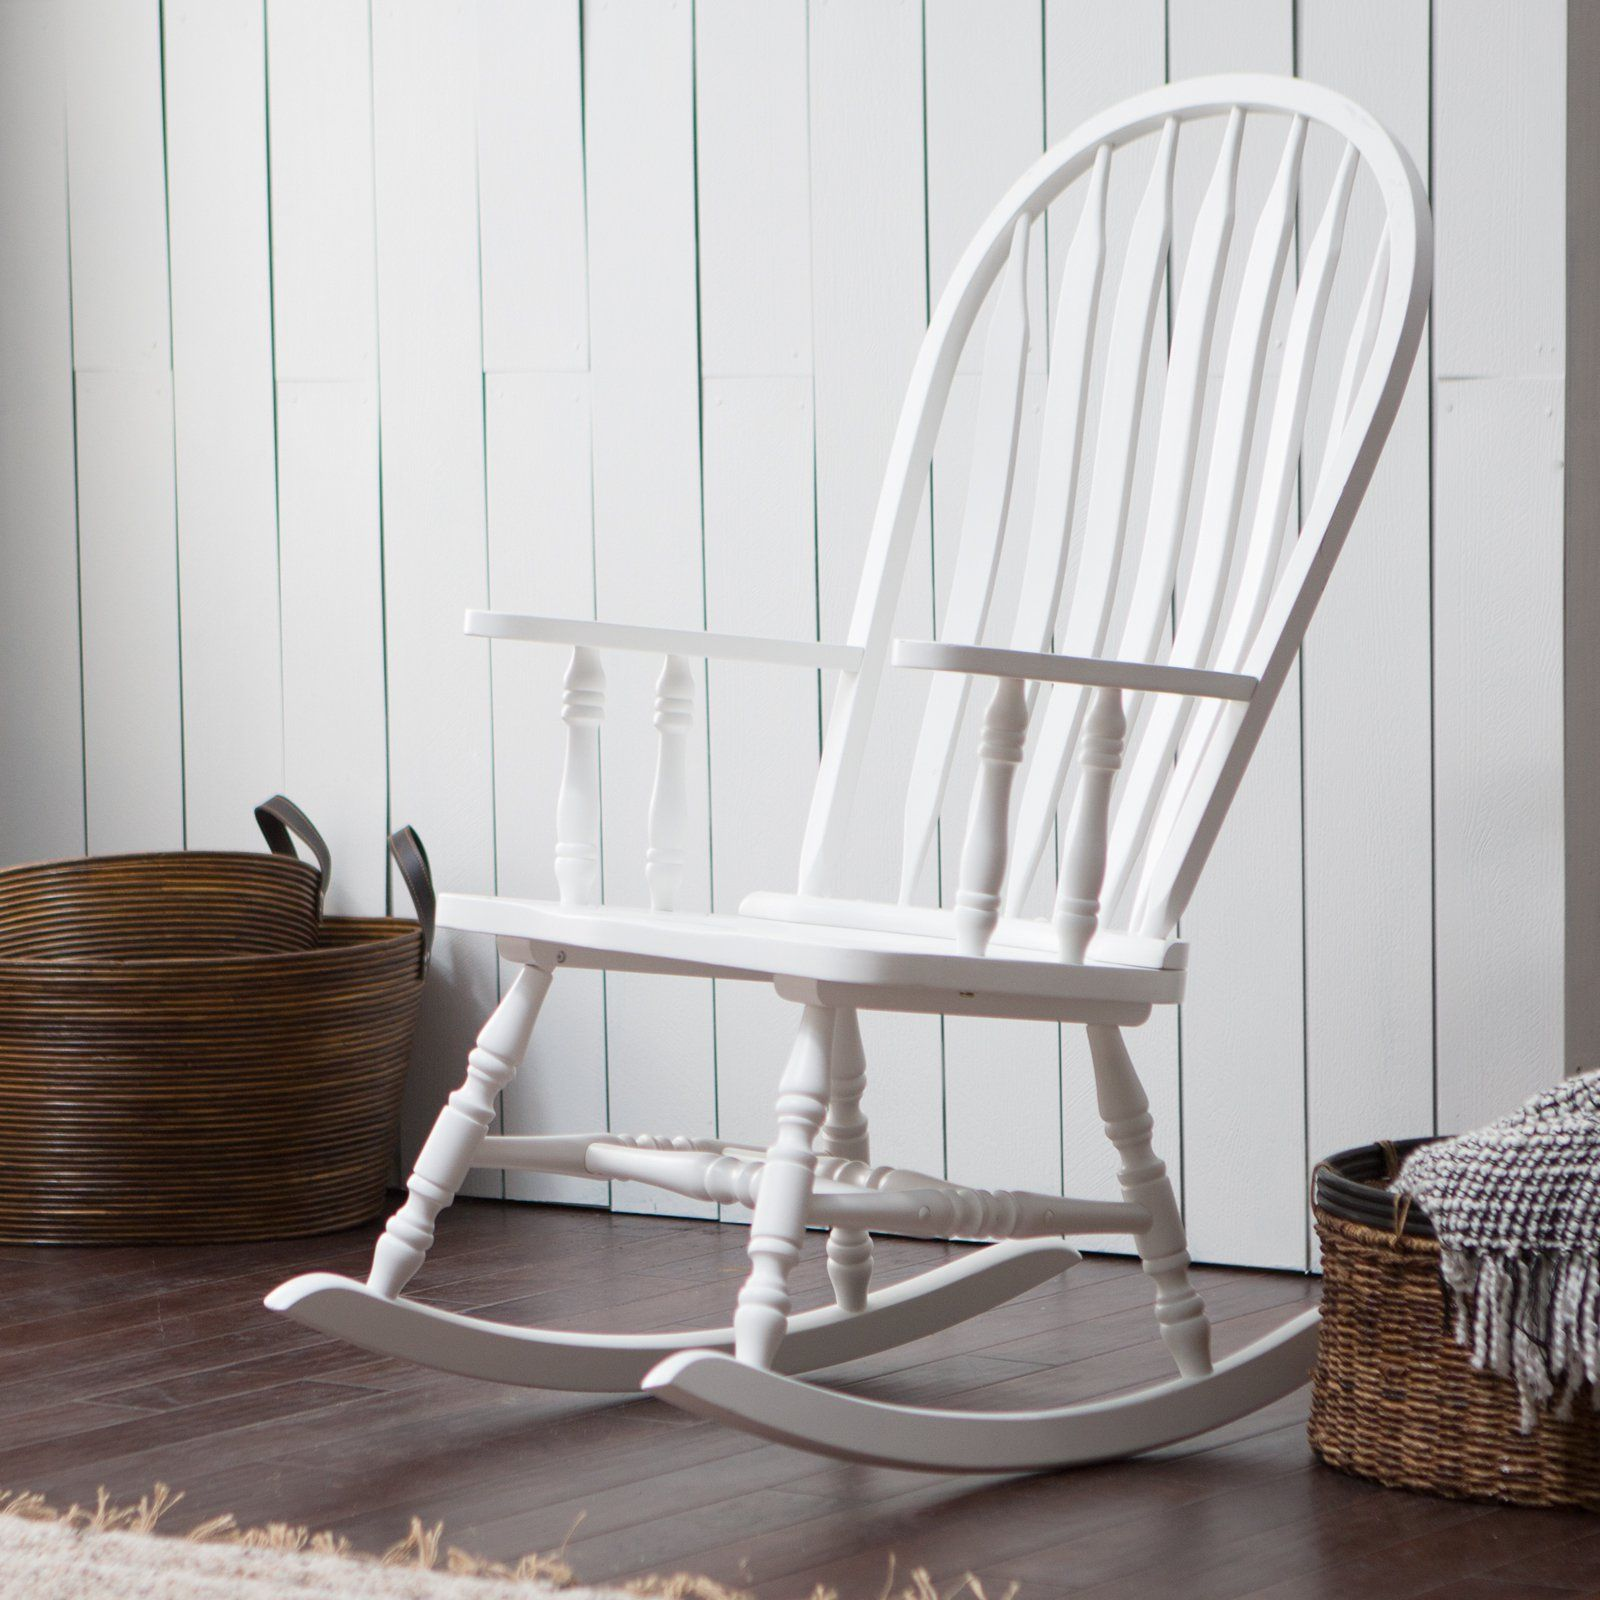 Wooden Rocking Chairs Nursery Best Gaming For Pc Belham Living Windsor Indoor Wood Chair A White At Hayneedle